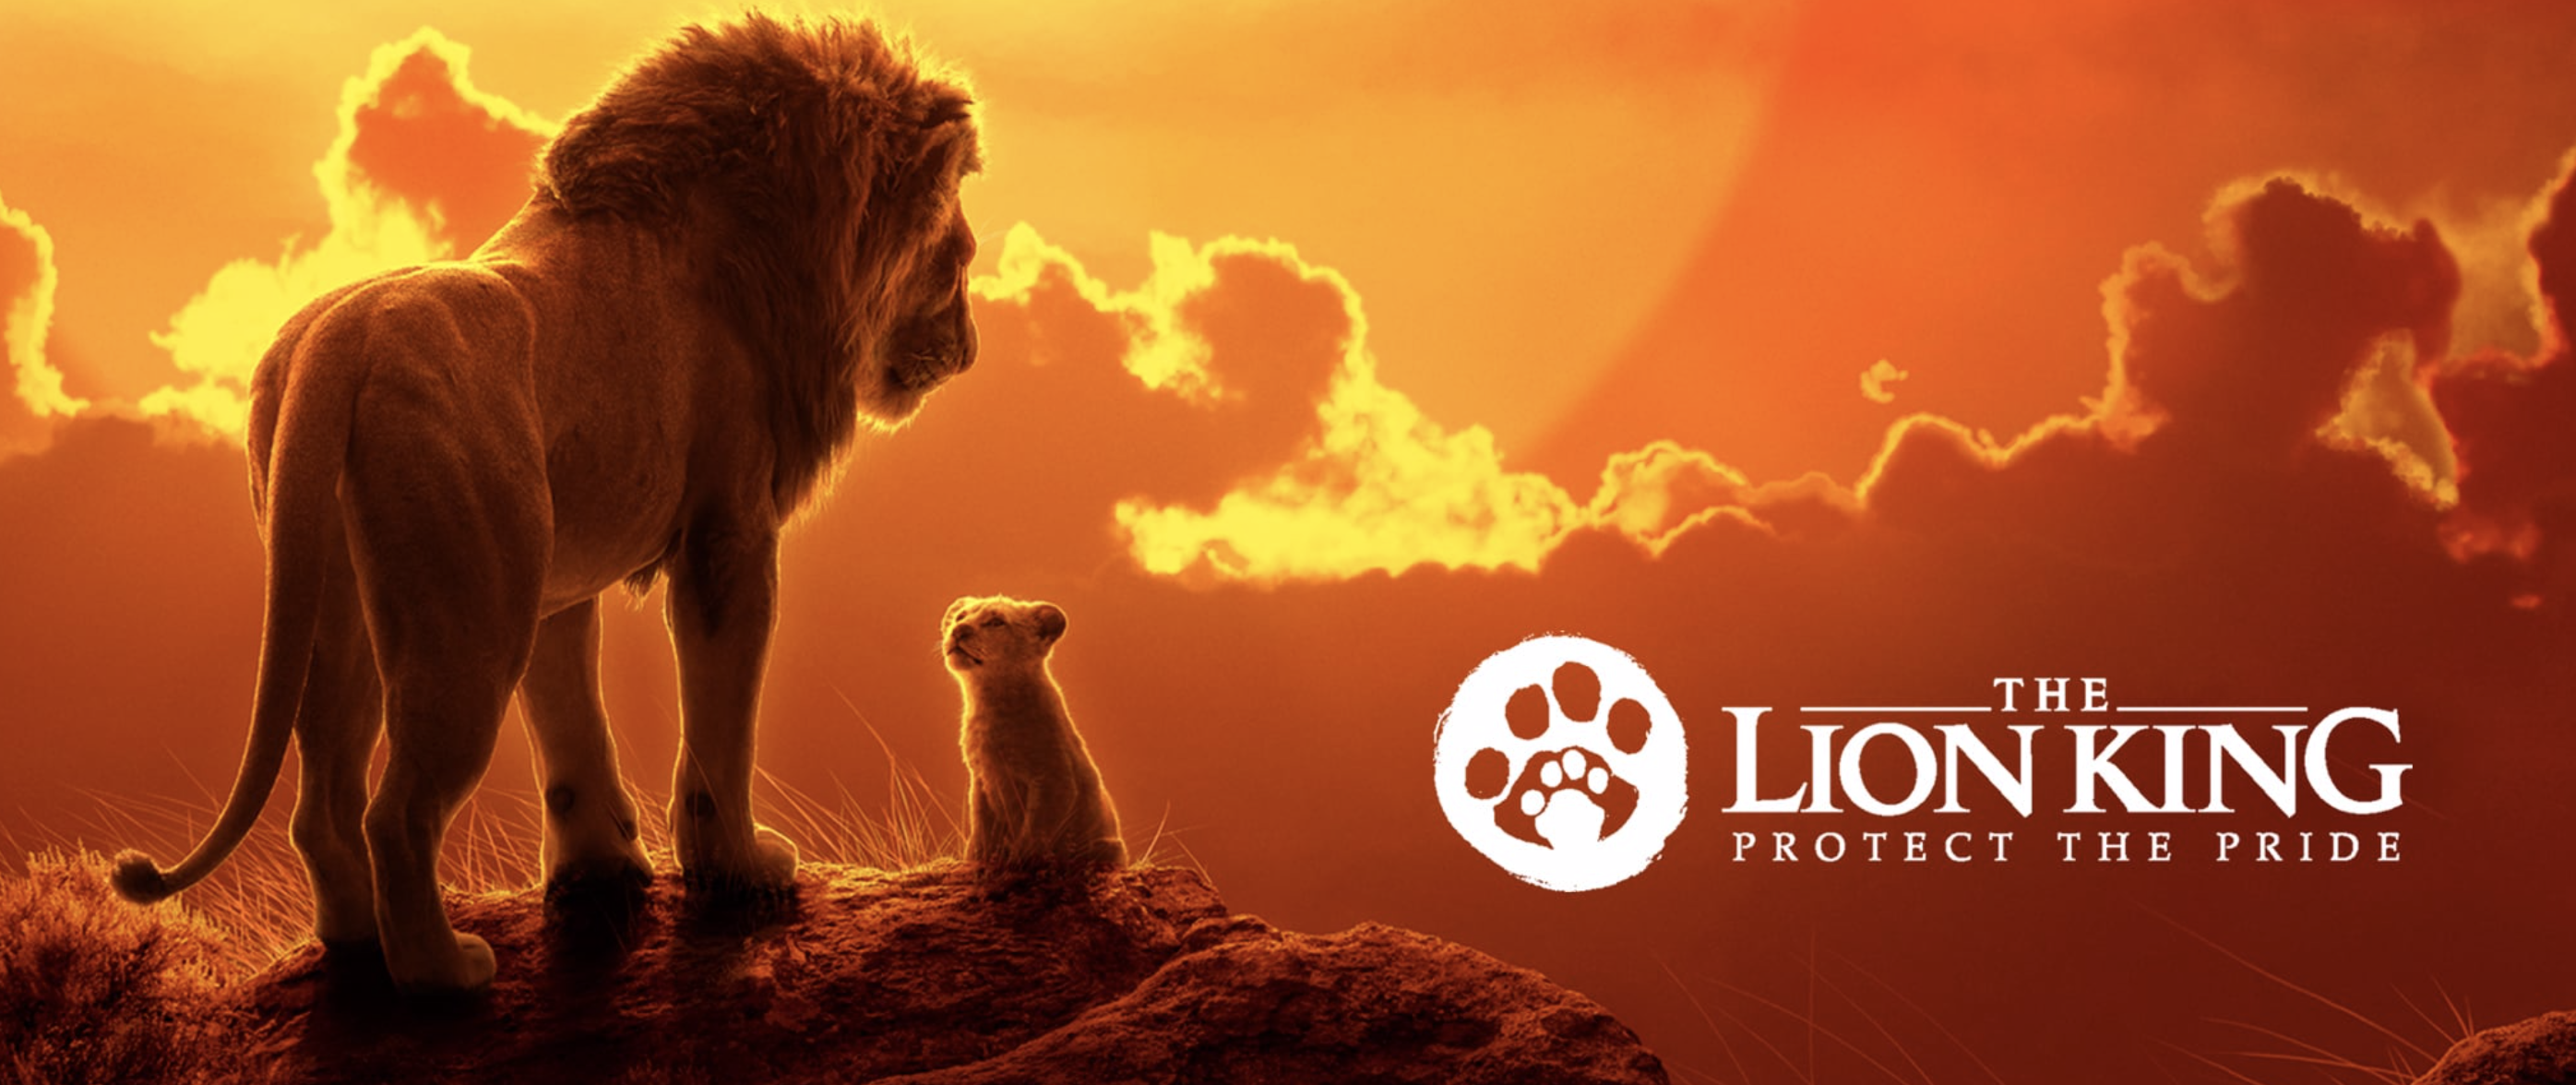 Disney to Donate up to $3 Million to Help Double the Lion Population by 2050